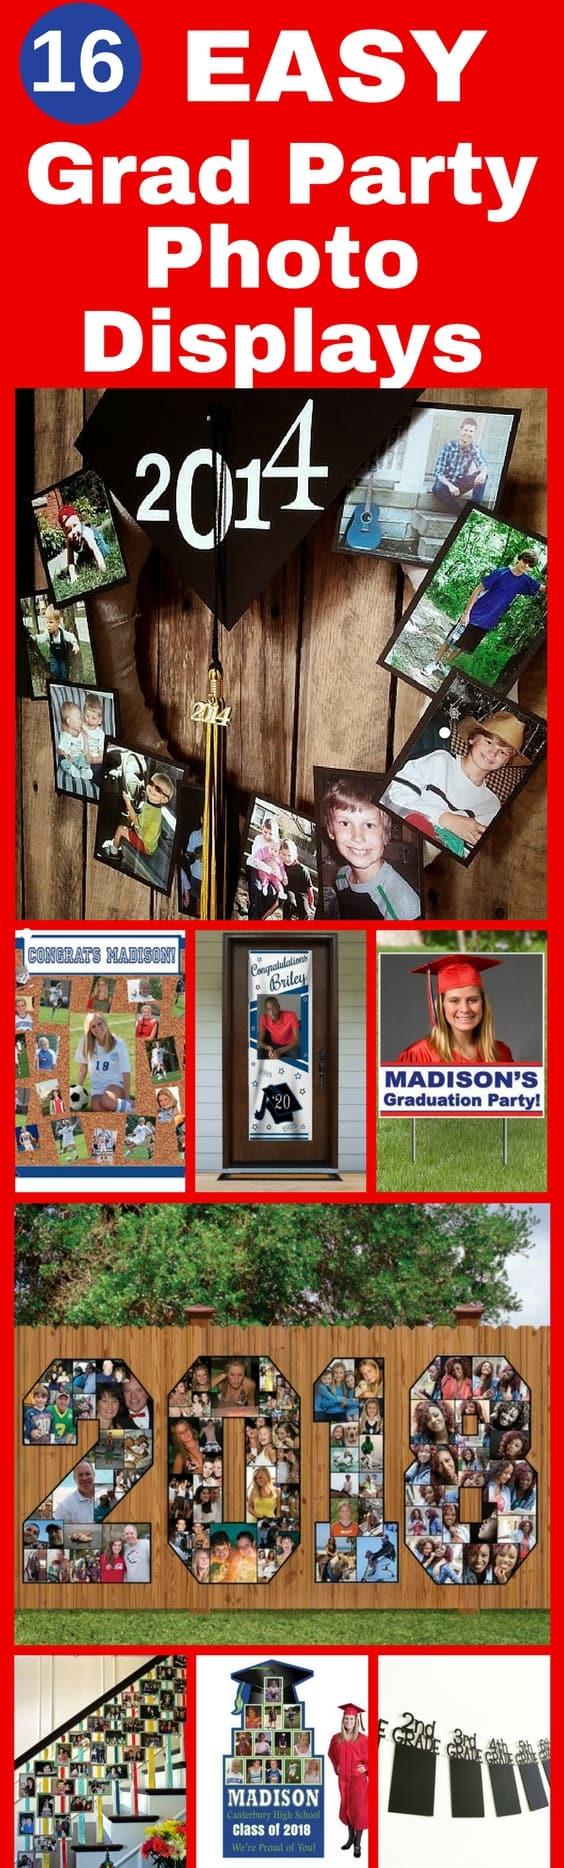 Easy Grad Party Photo Displays - Looking for a fabulous way to display your child's photos at the graduation party? Check out these impressive - but easy - graduation party photo display ideas!